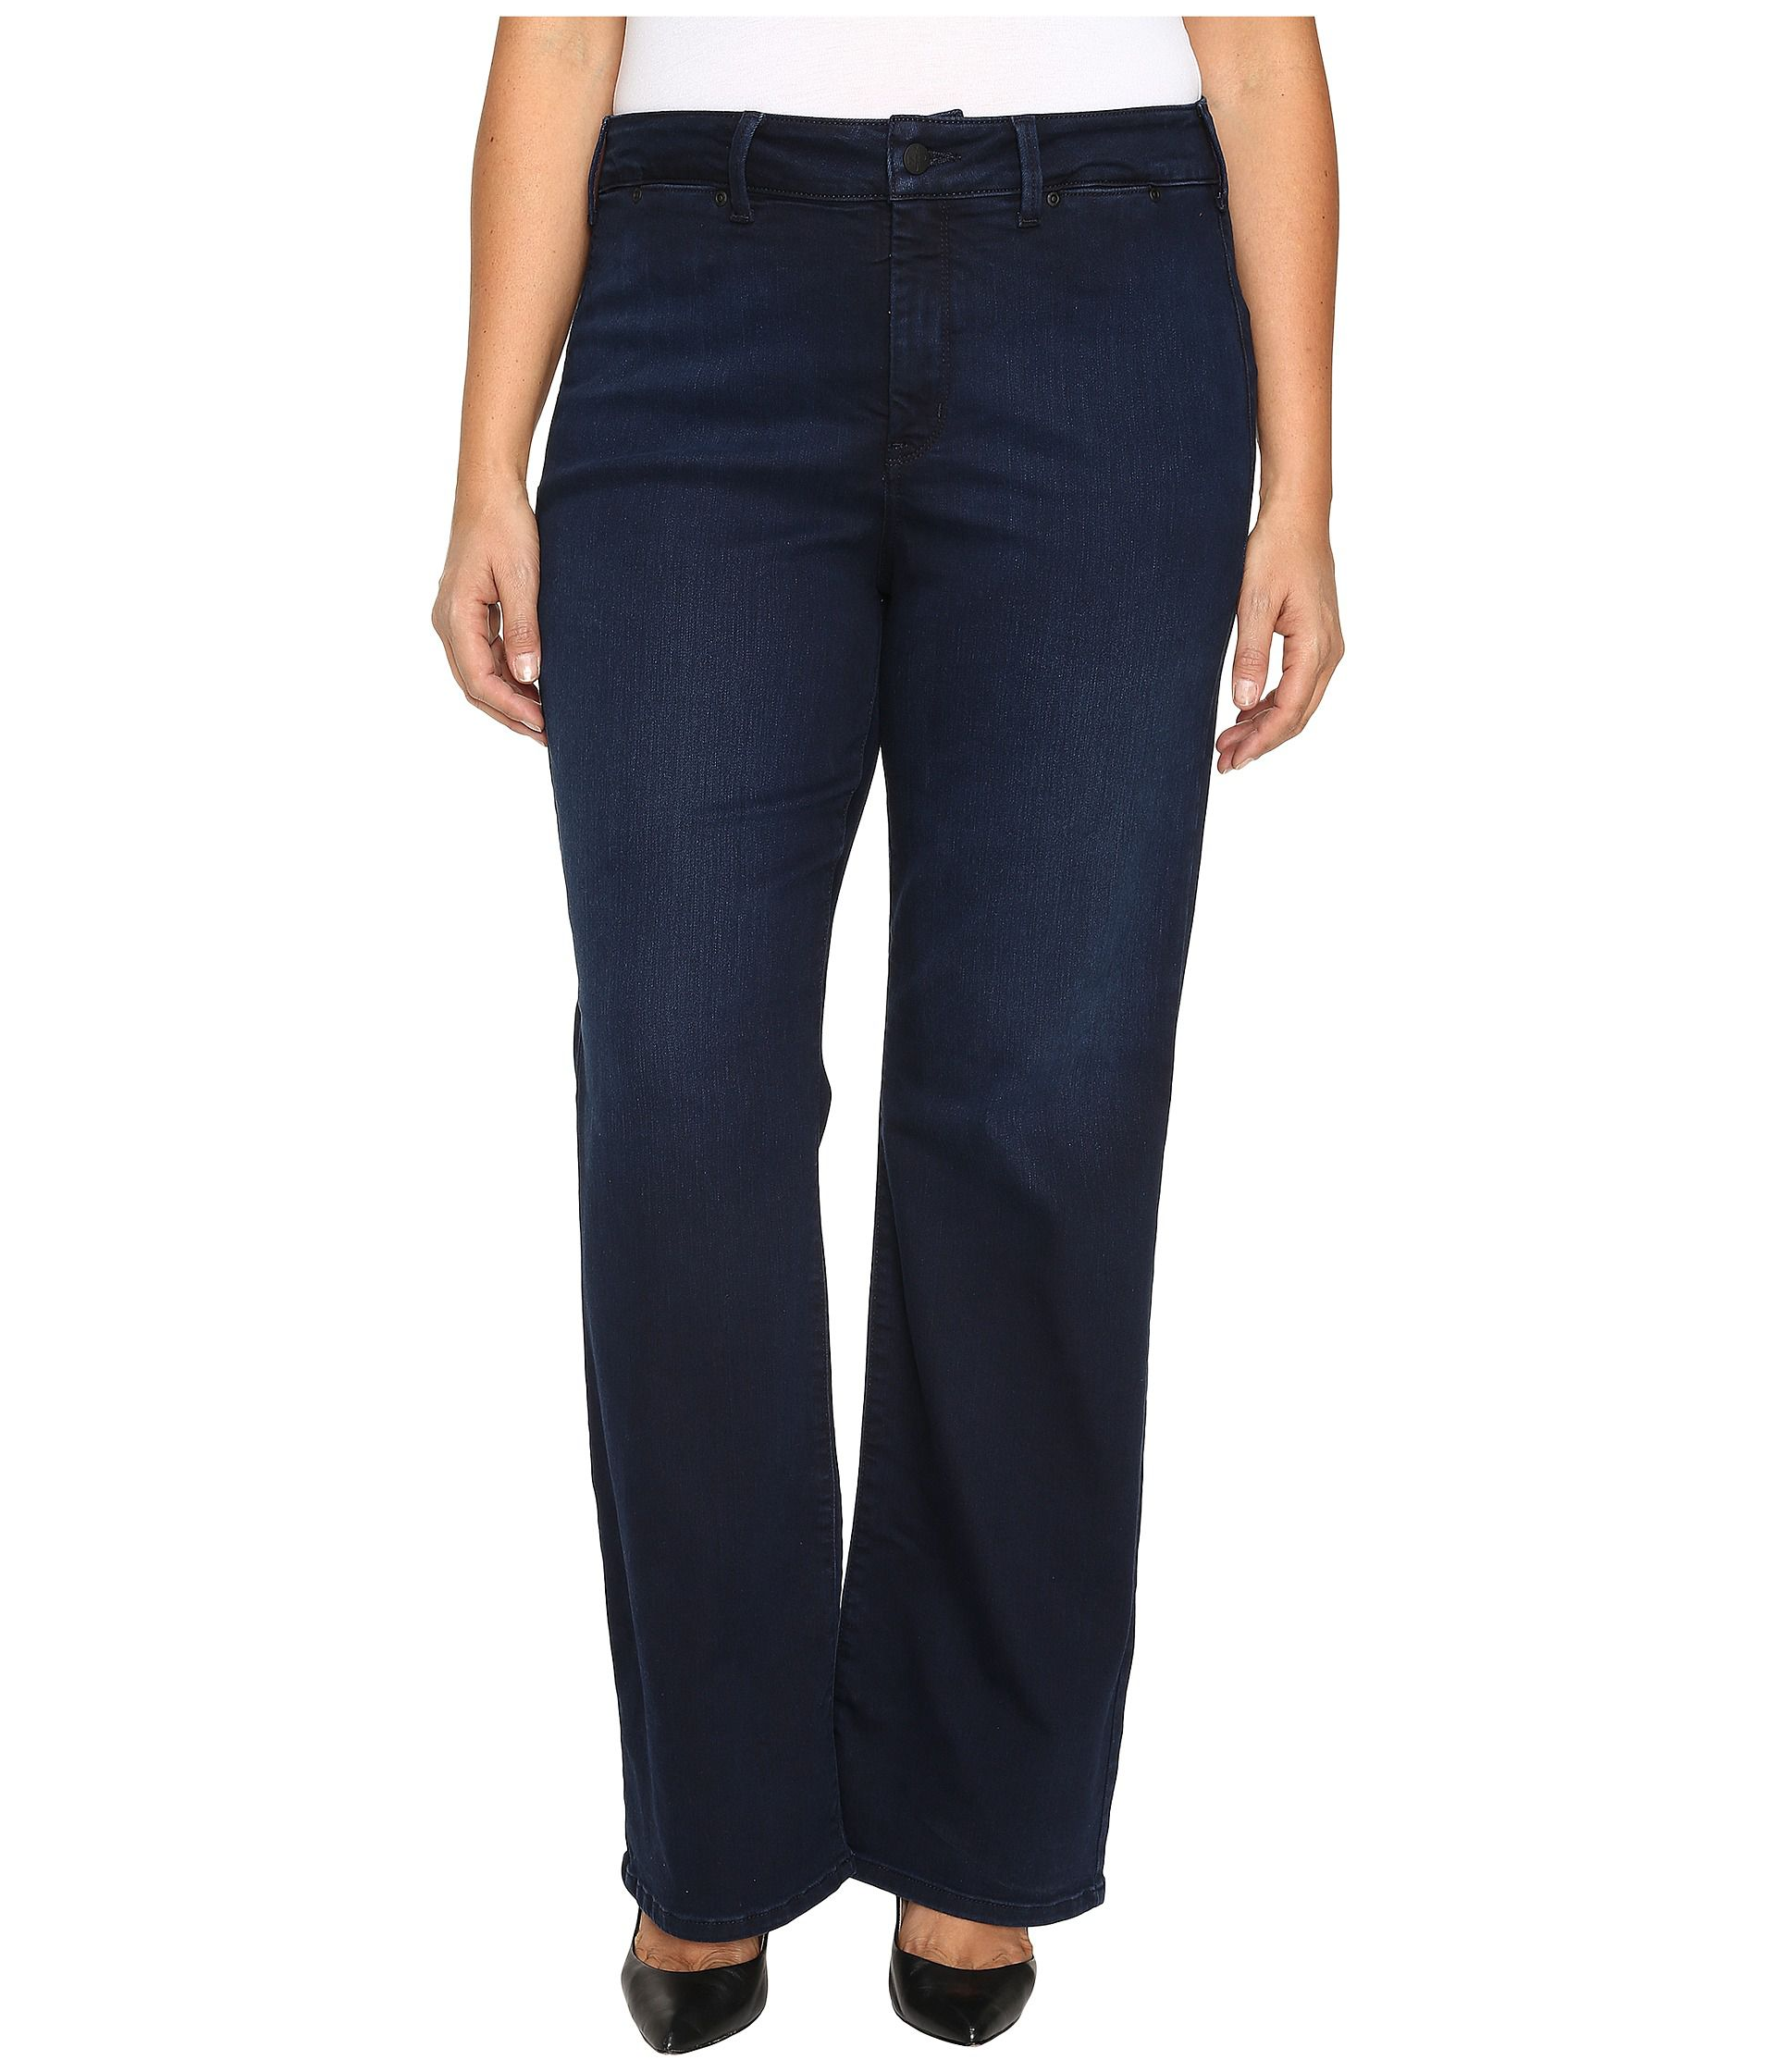 cb0509d6b017e The Best Jeans for Your Body Type